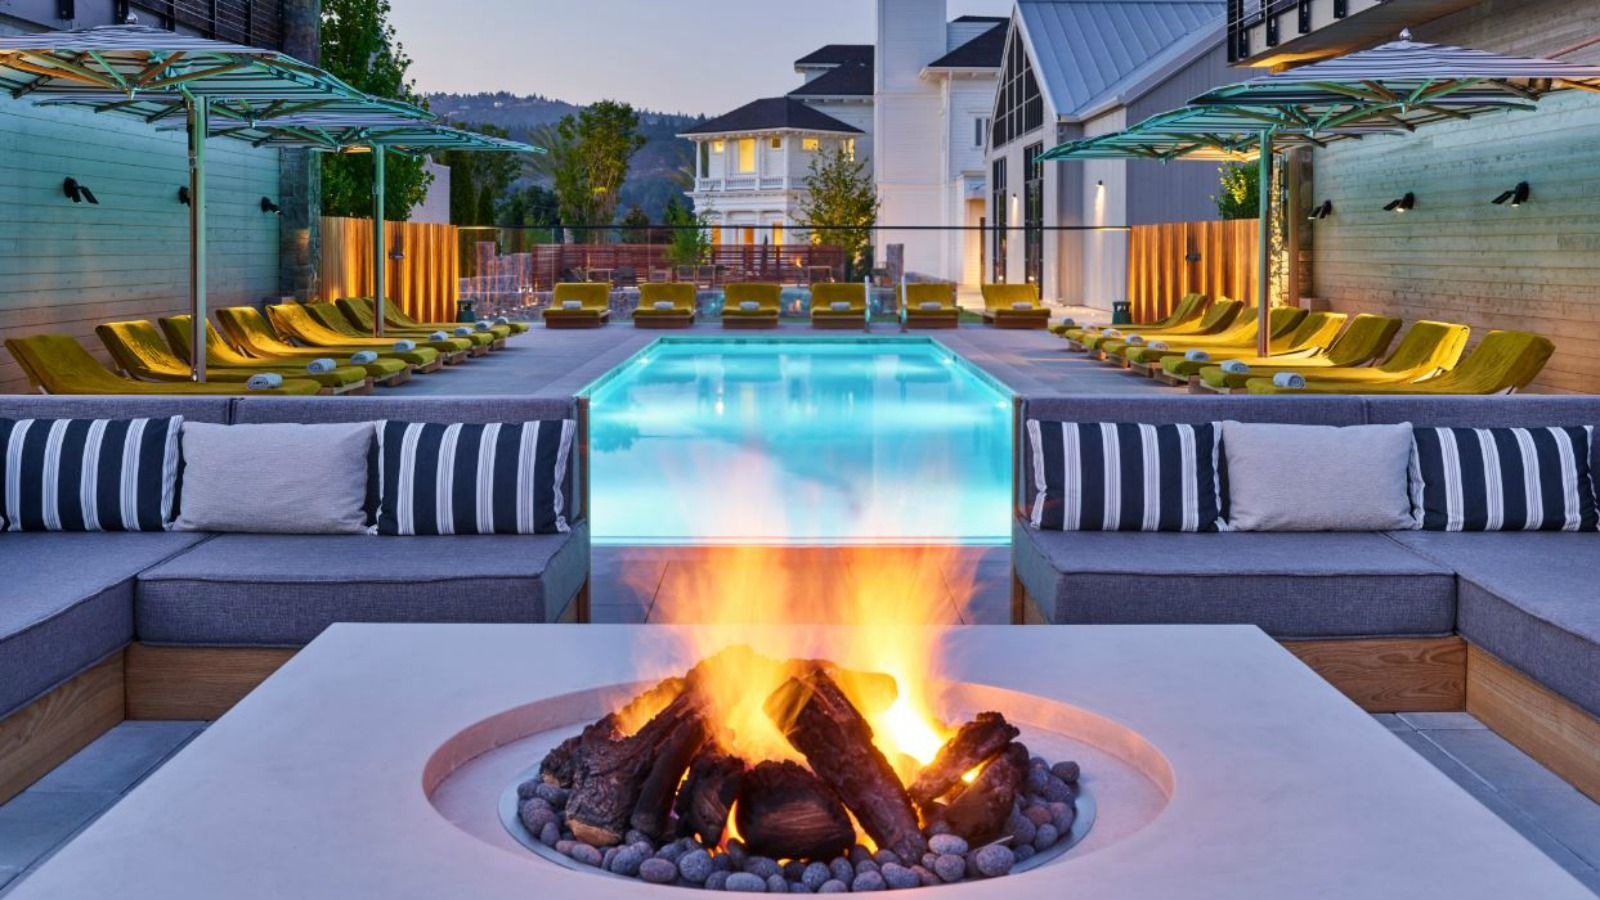 Las Alcobas Napa Valley - Fire Pit and Pool